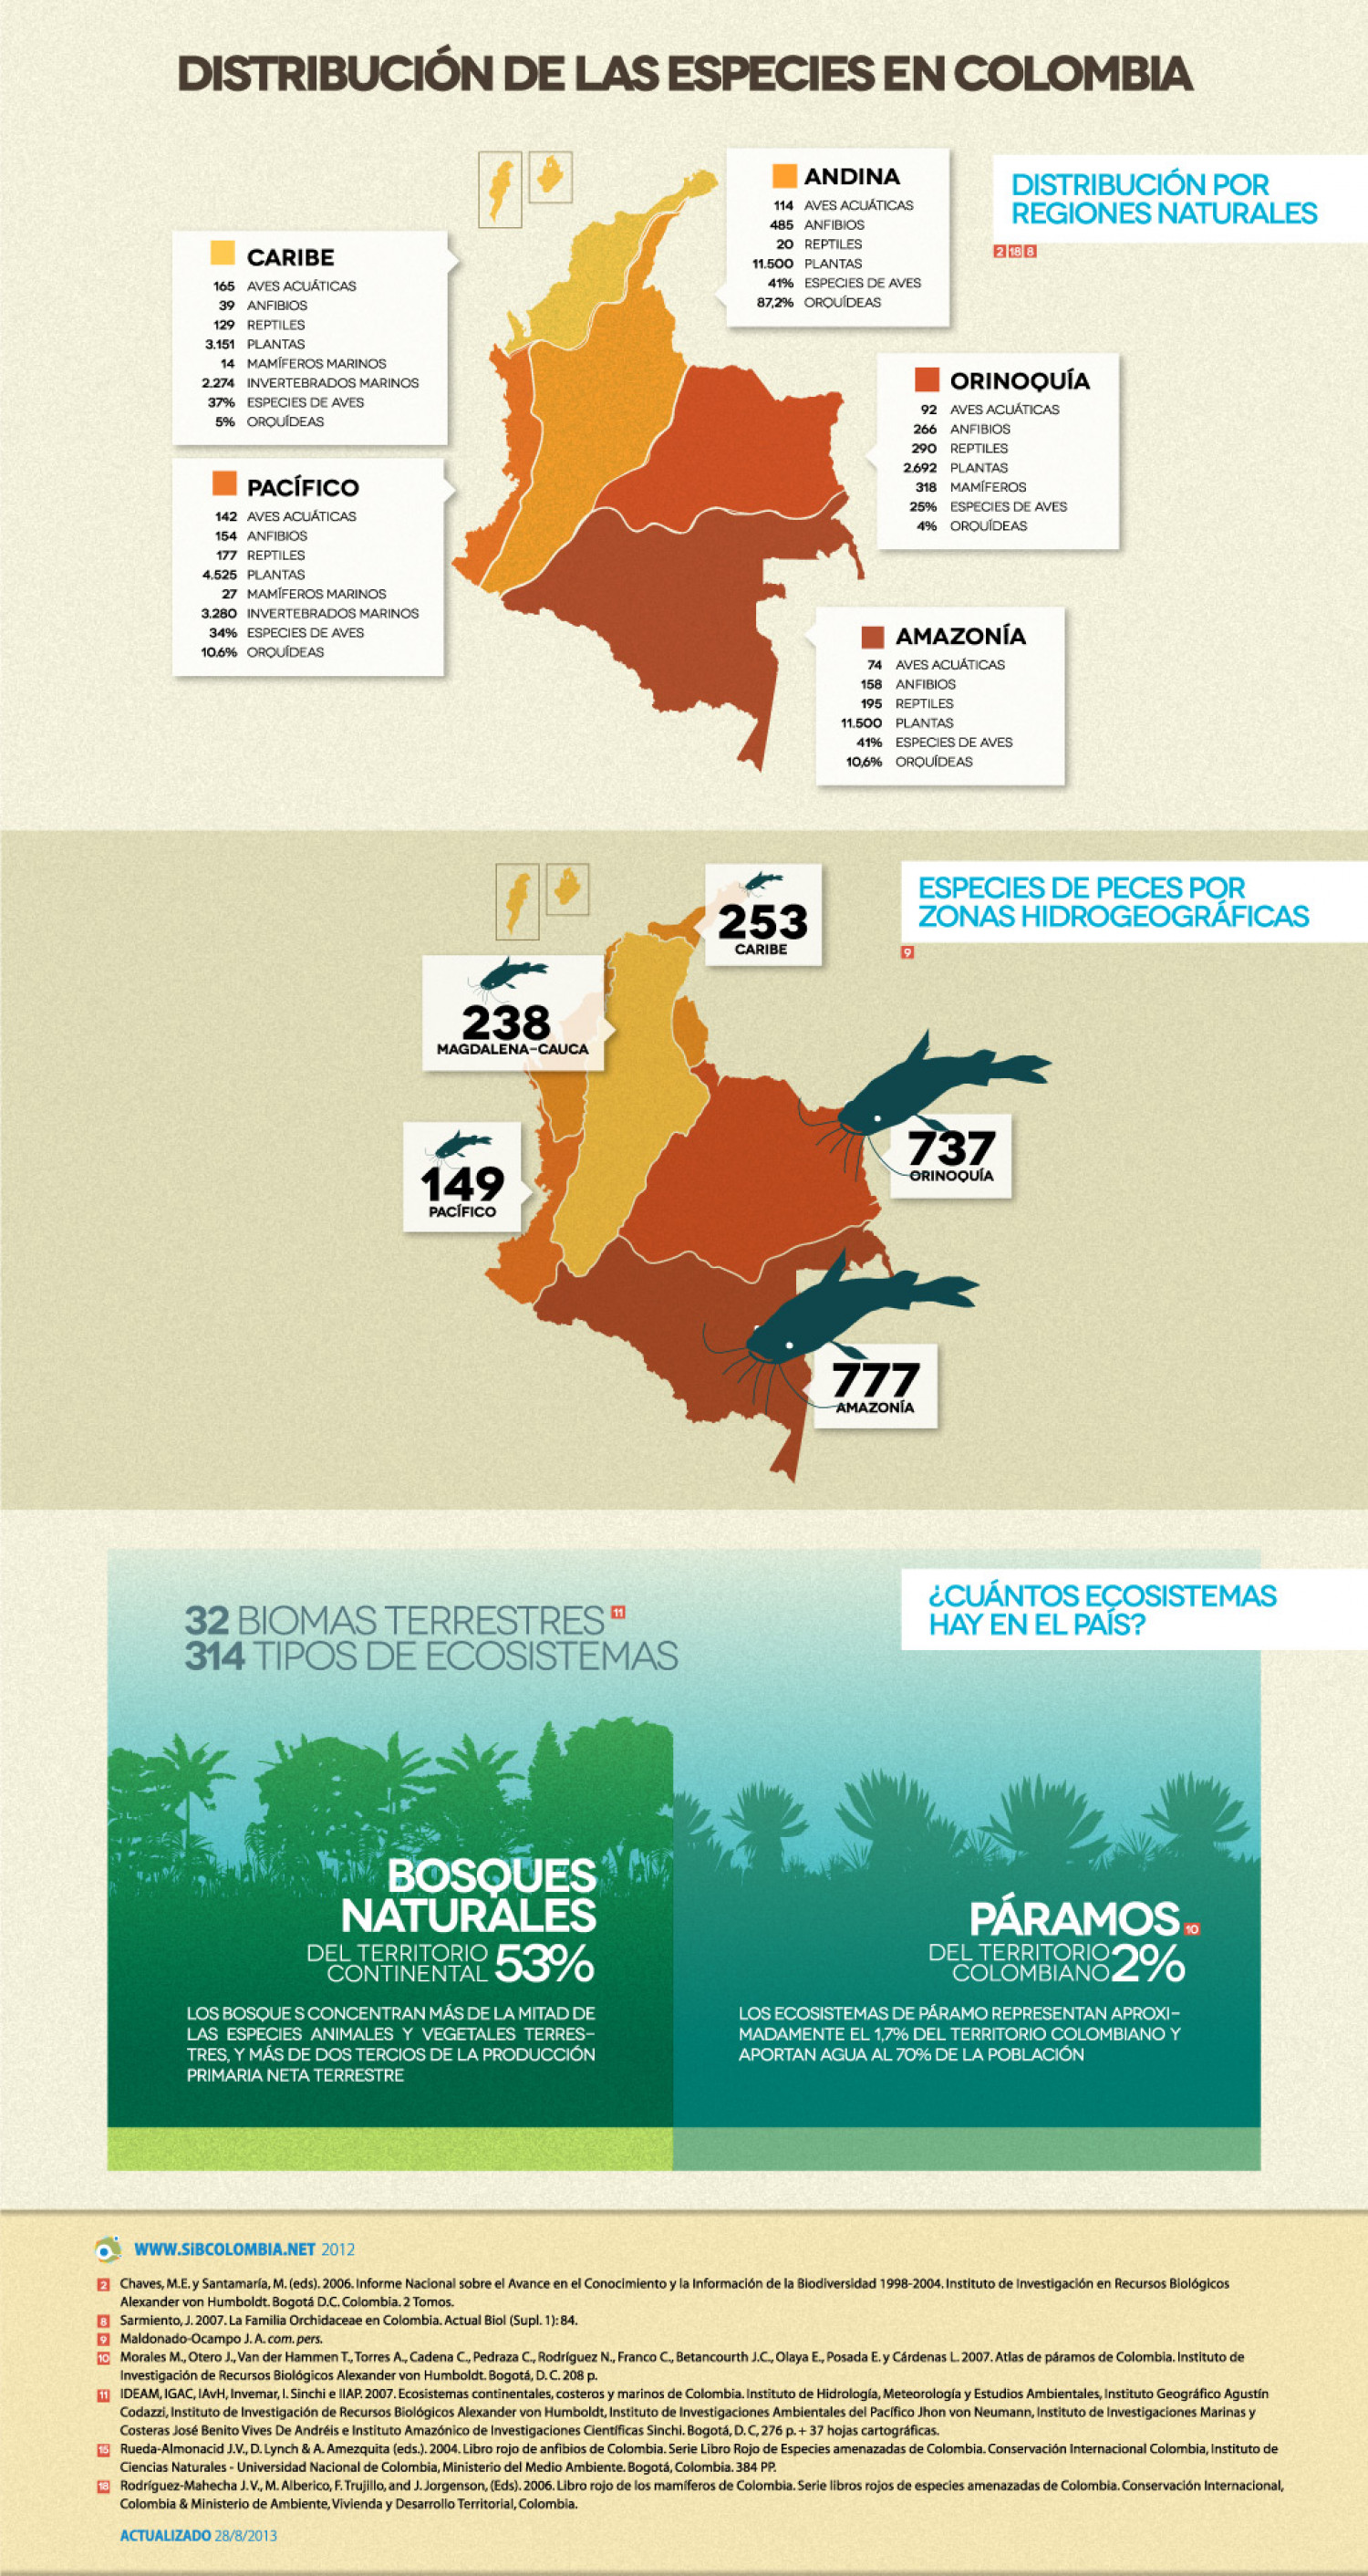 Distribution of species in Colombia Infographic